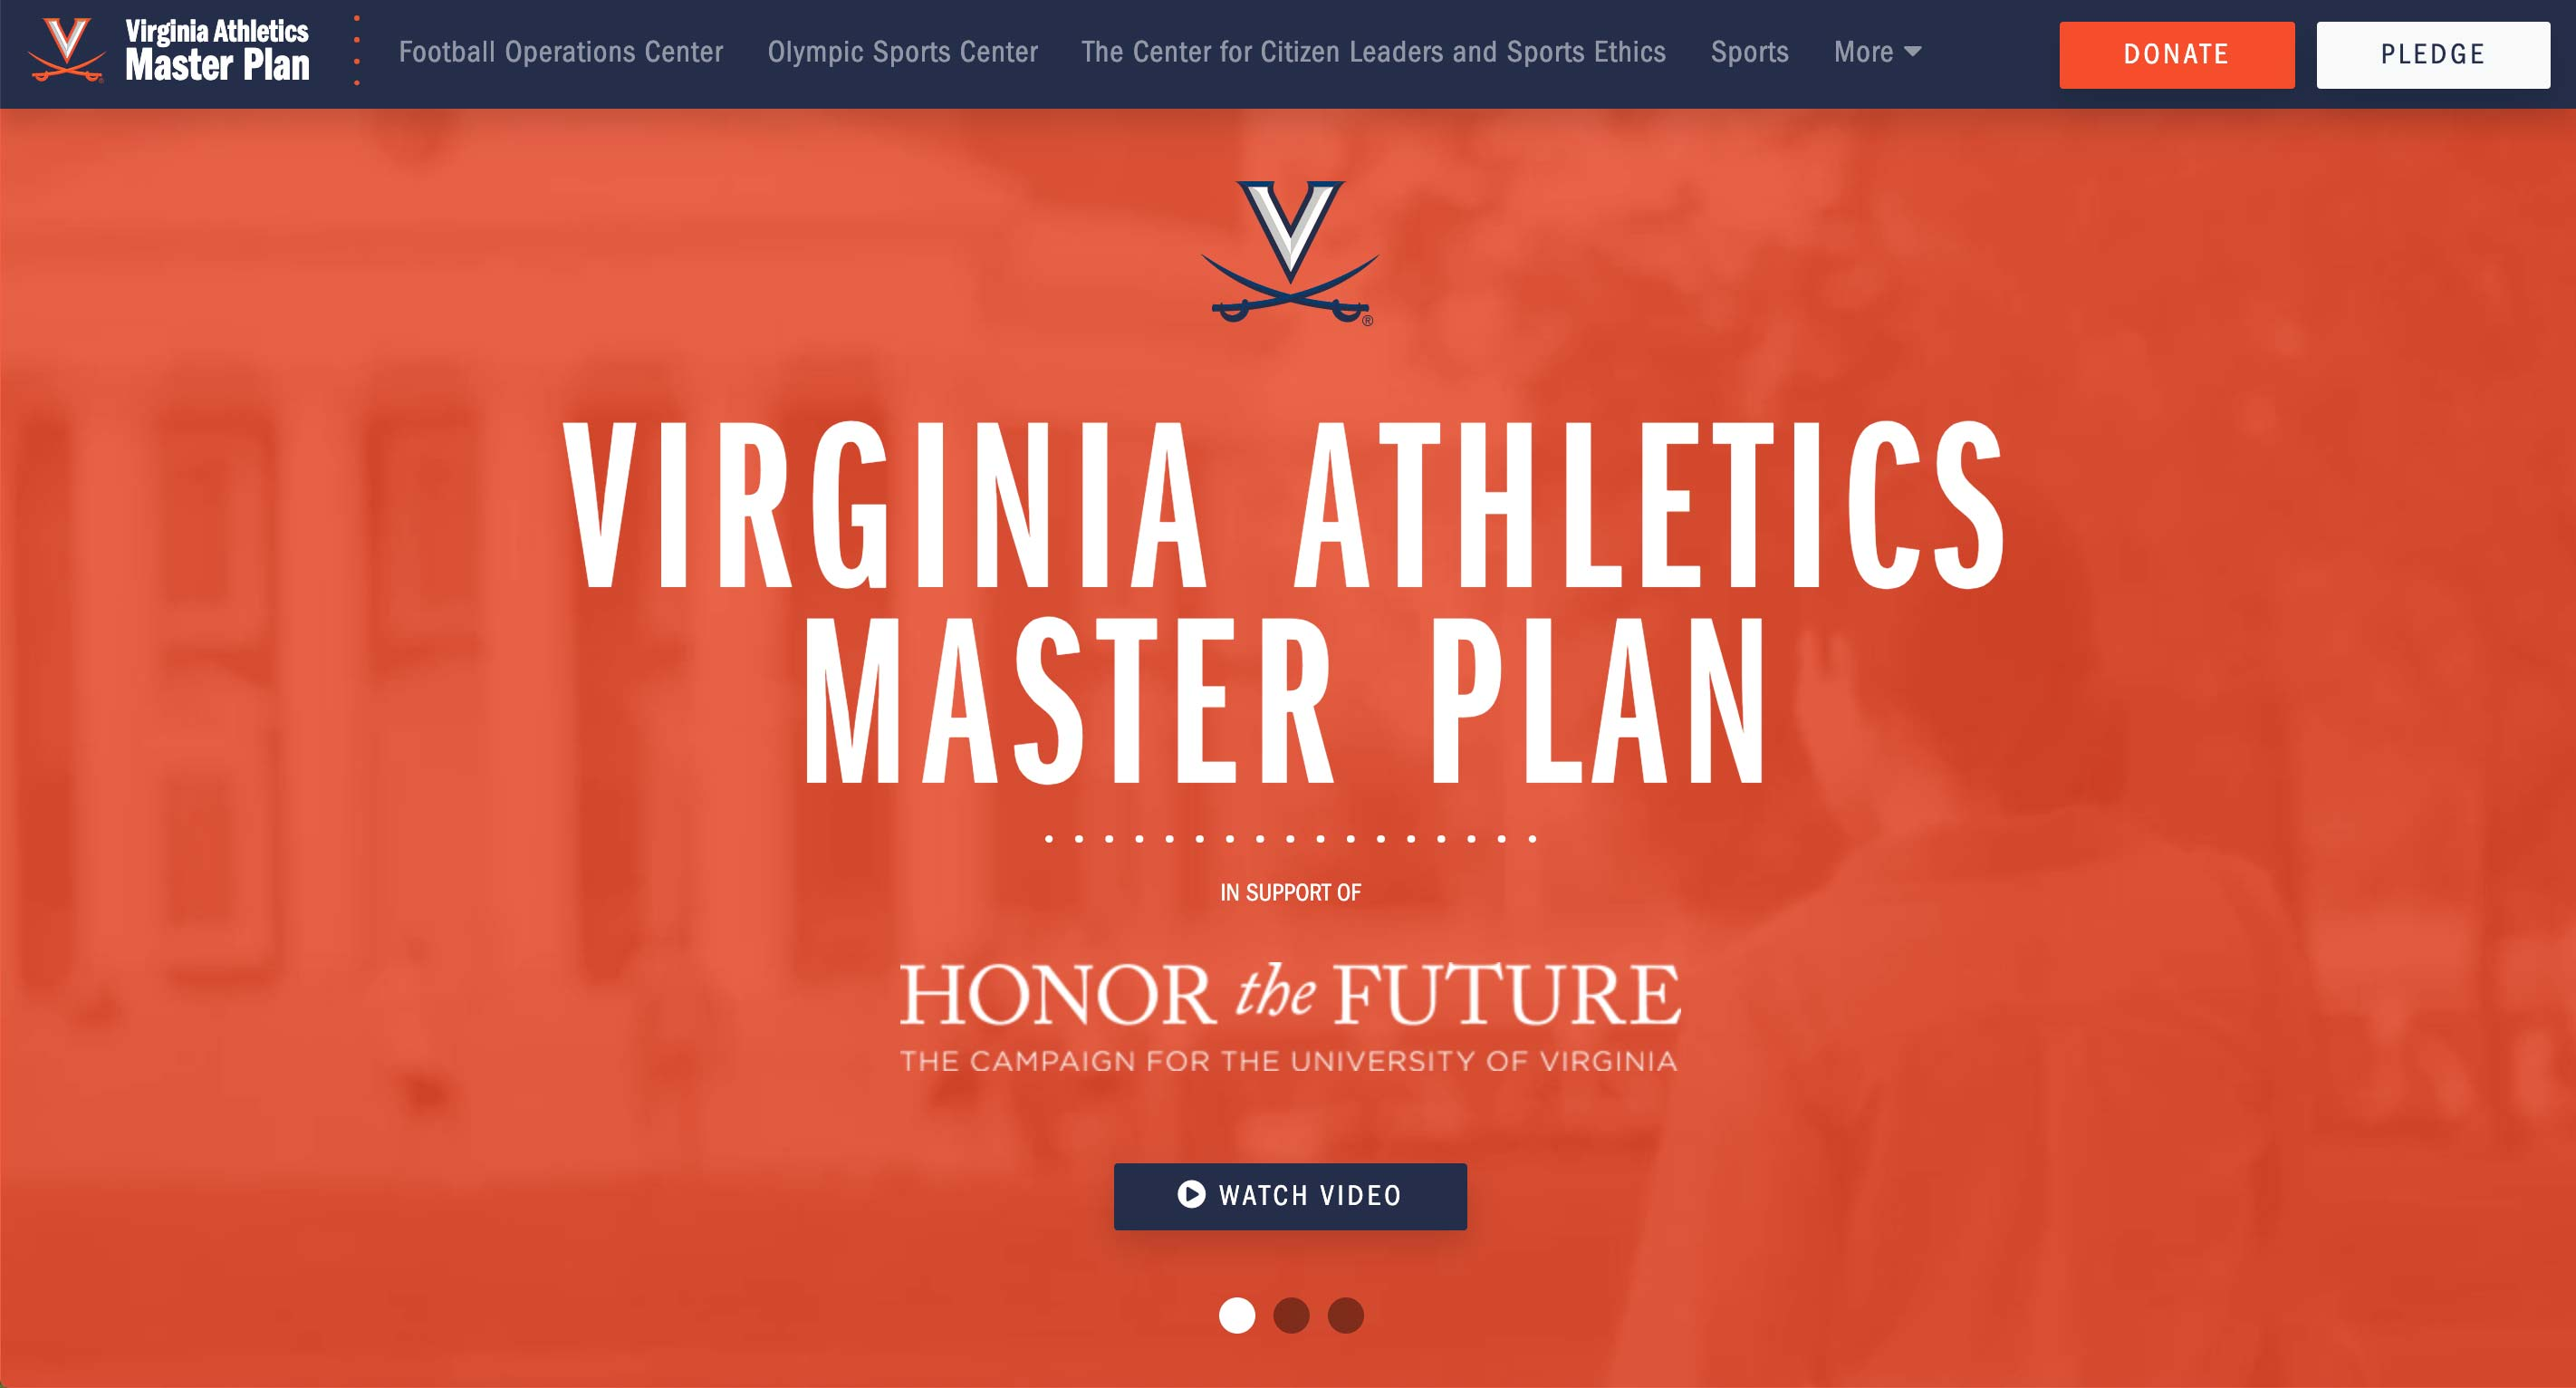 Virginia Sports Master Plan Website | <a href='https://virginiasportsmp.com/' target='_blank'>Visit Site <i class='nc-icon-glyph arrows-1_share-91'></i></a><br><span>University of Virginia</span>